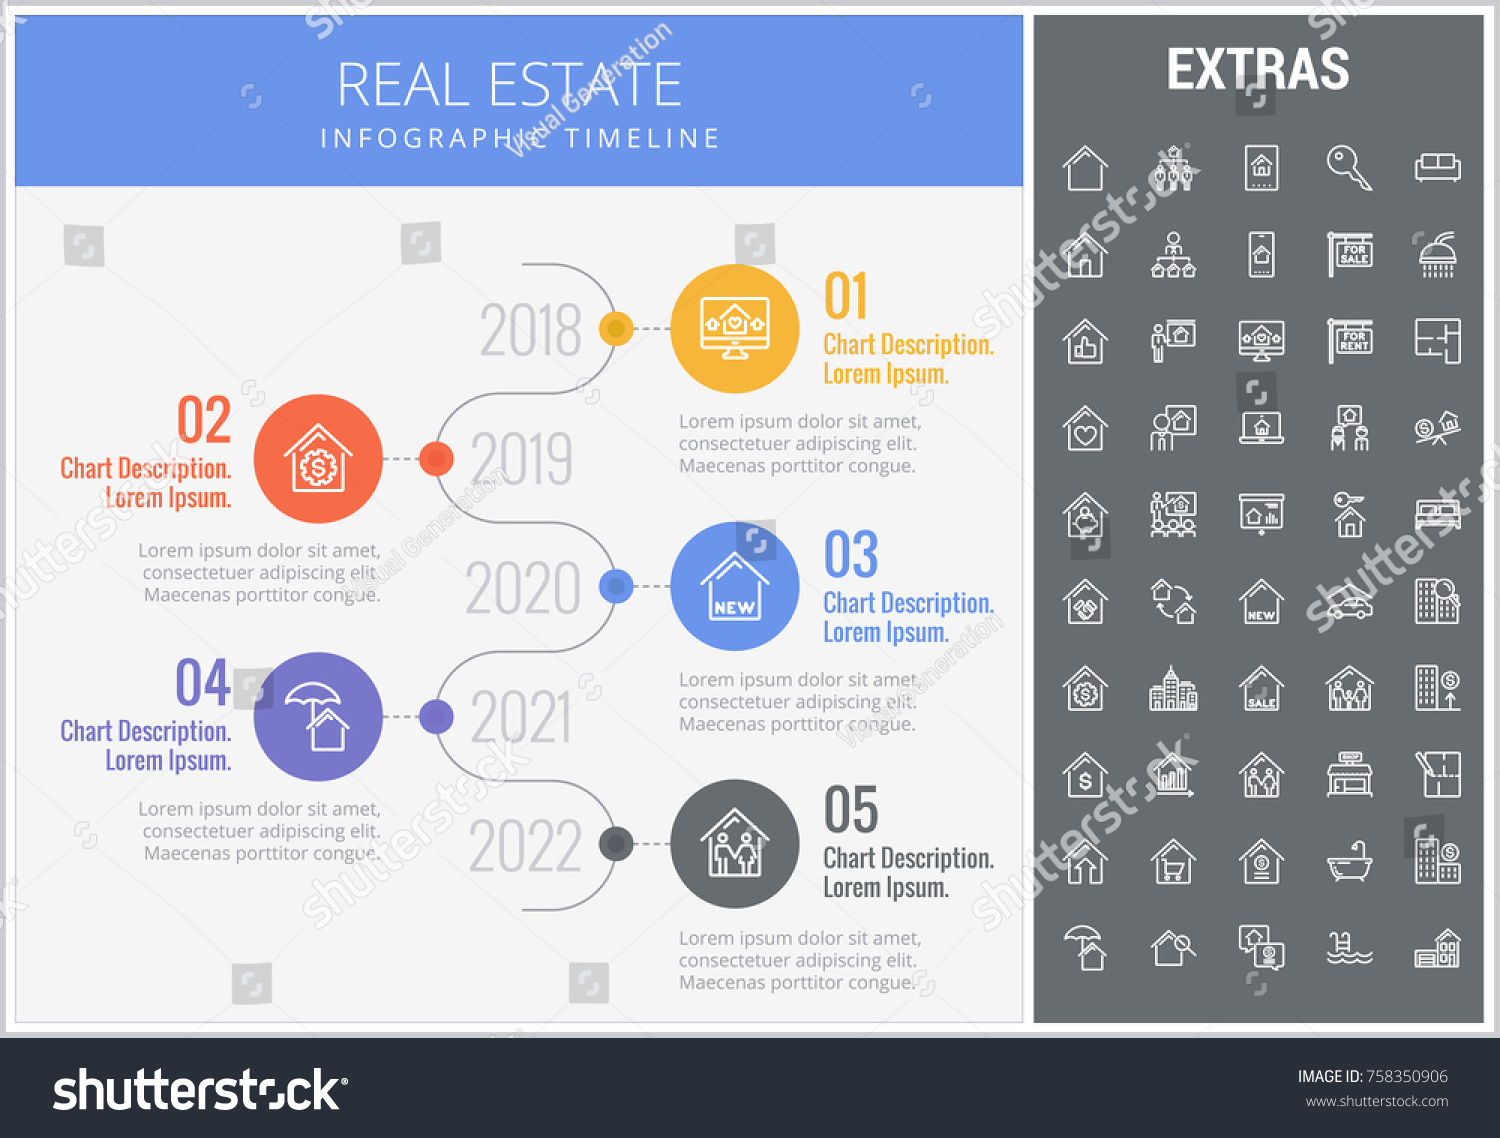 real estate infographic timeline template elements stock vector